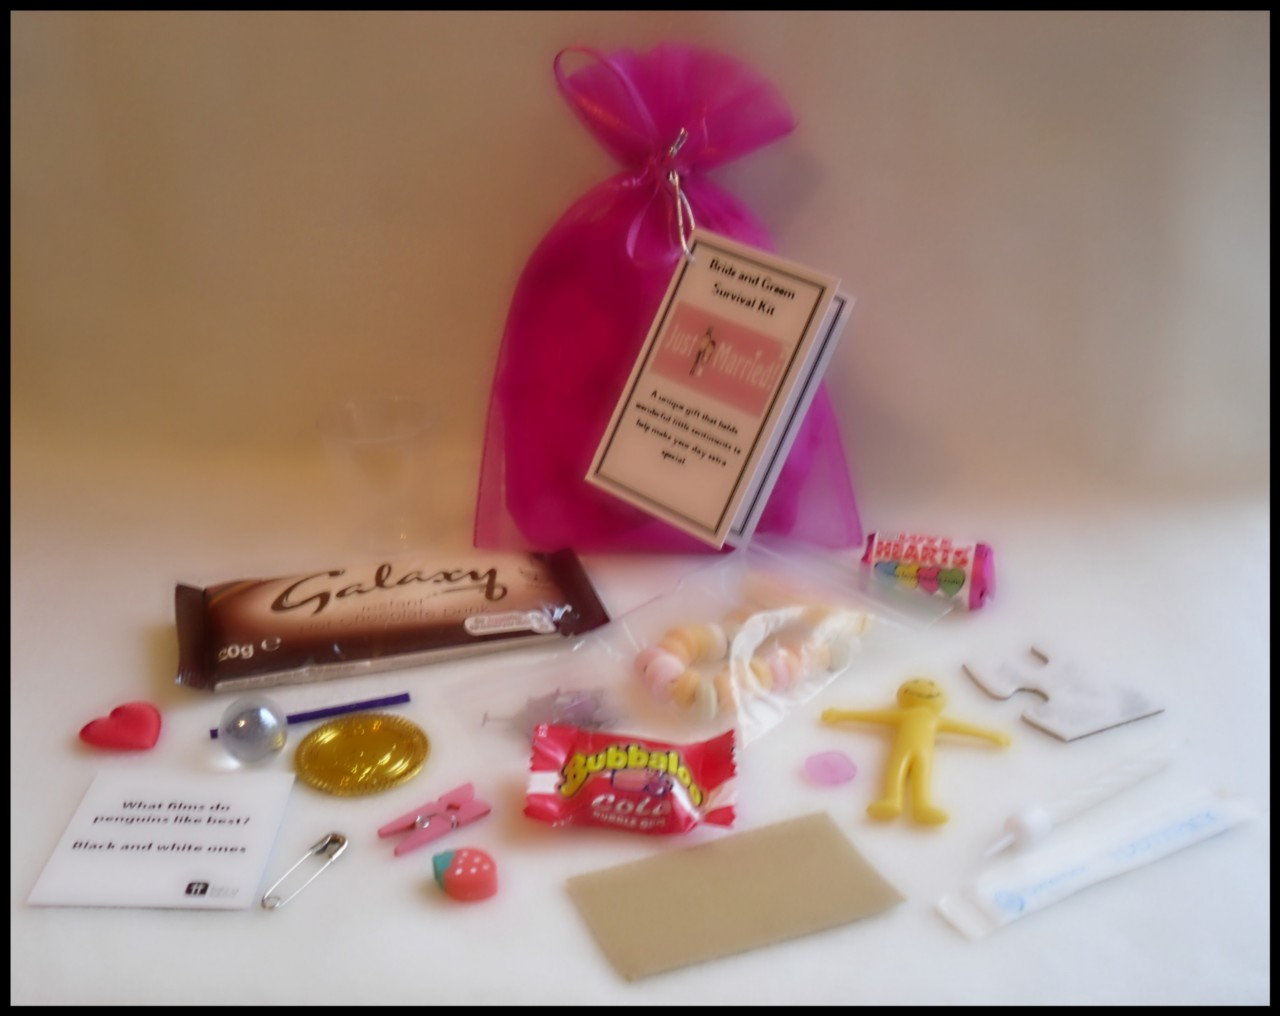 ... about Bride and Groom Novelty Survival Kit. An Unusual Wedding Gift